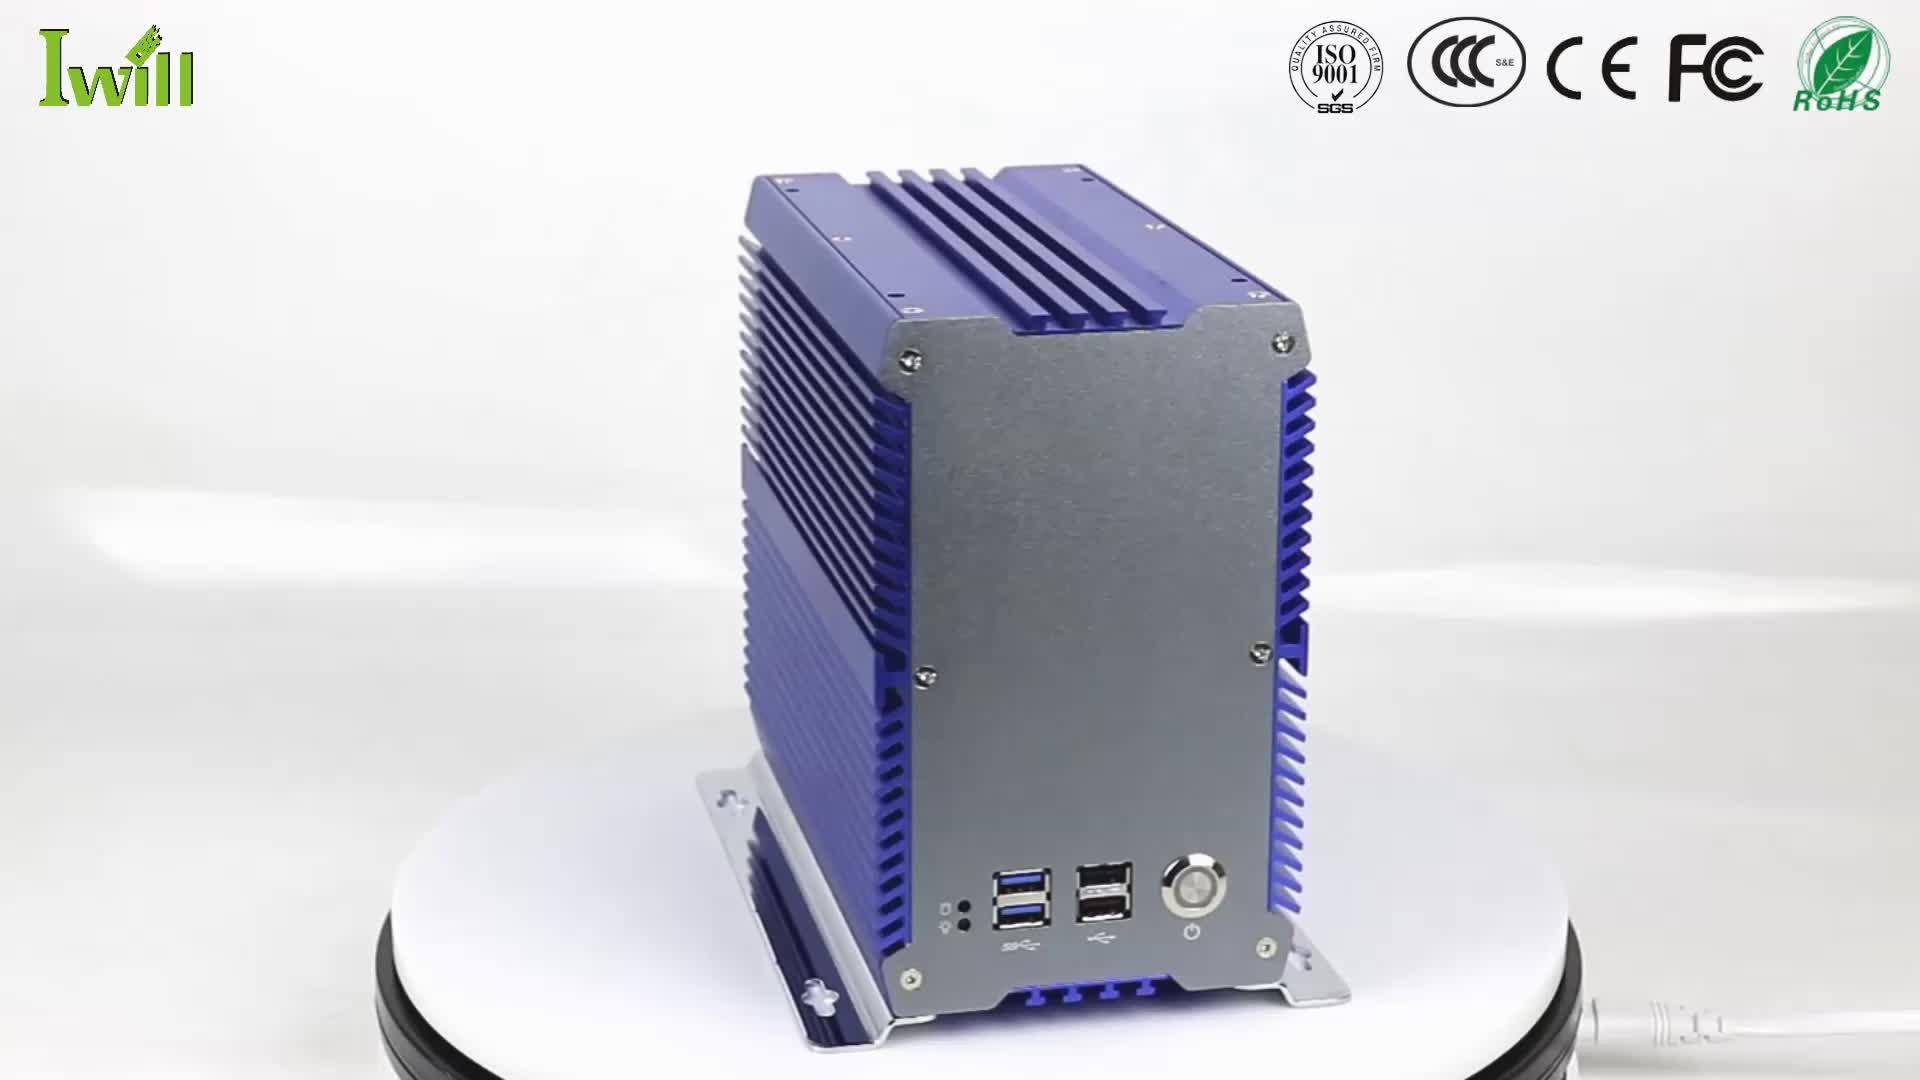 NEW update professional fanless industrial mini pc for 2 LAN embedded PCI slot i5 7200U